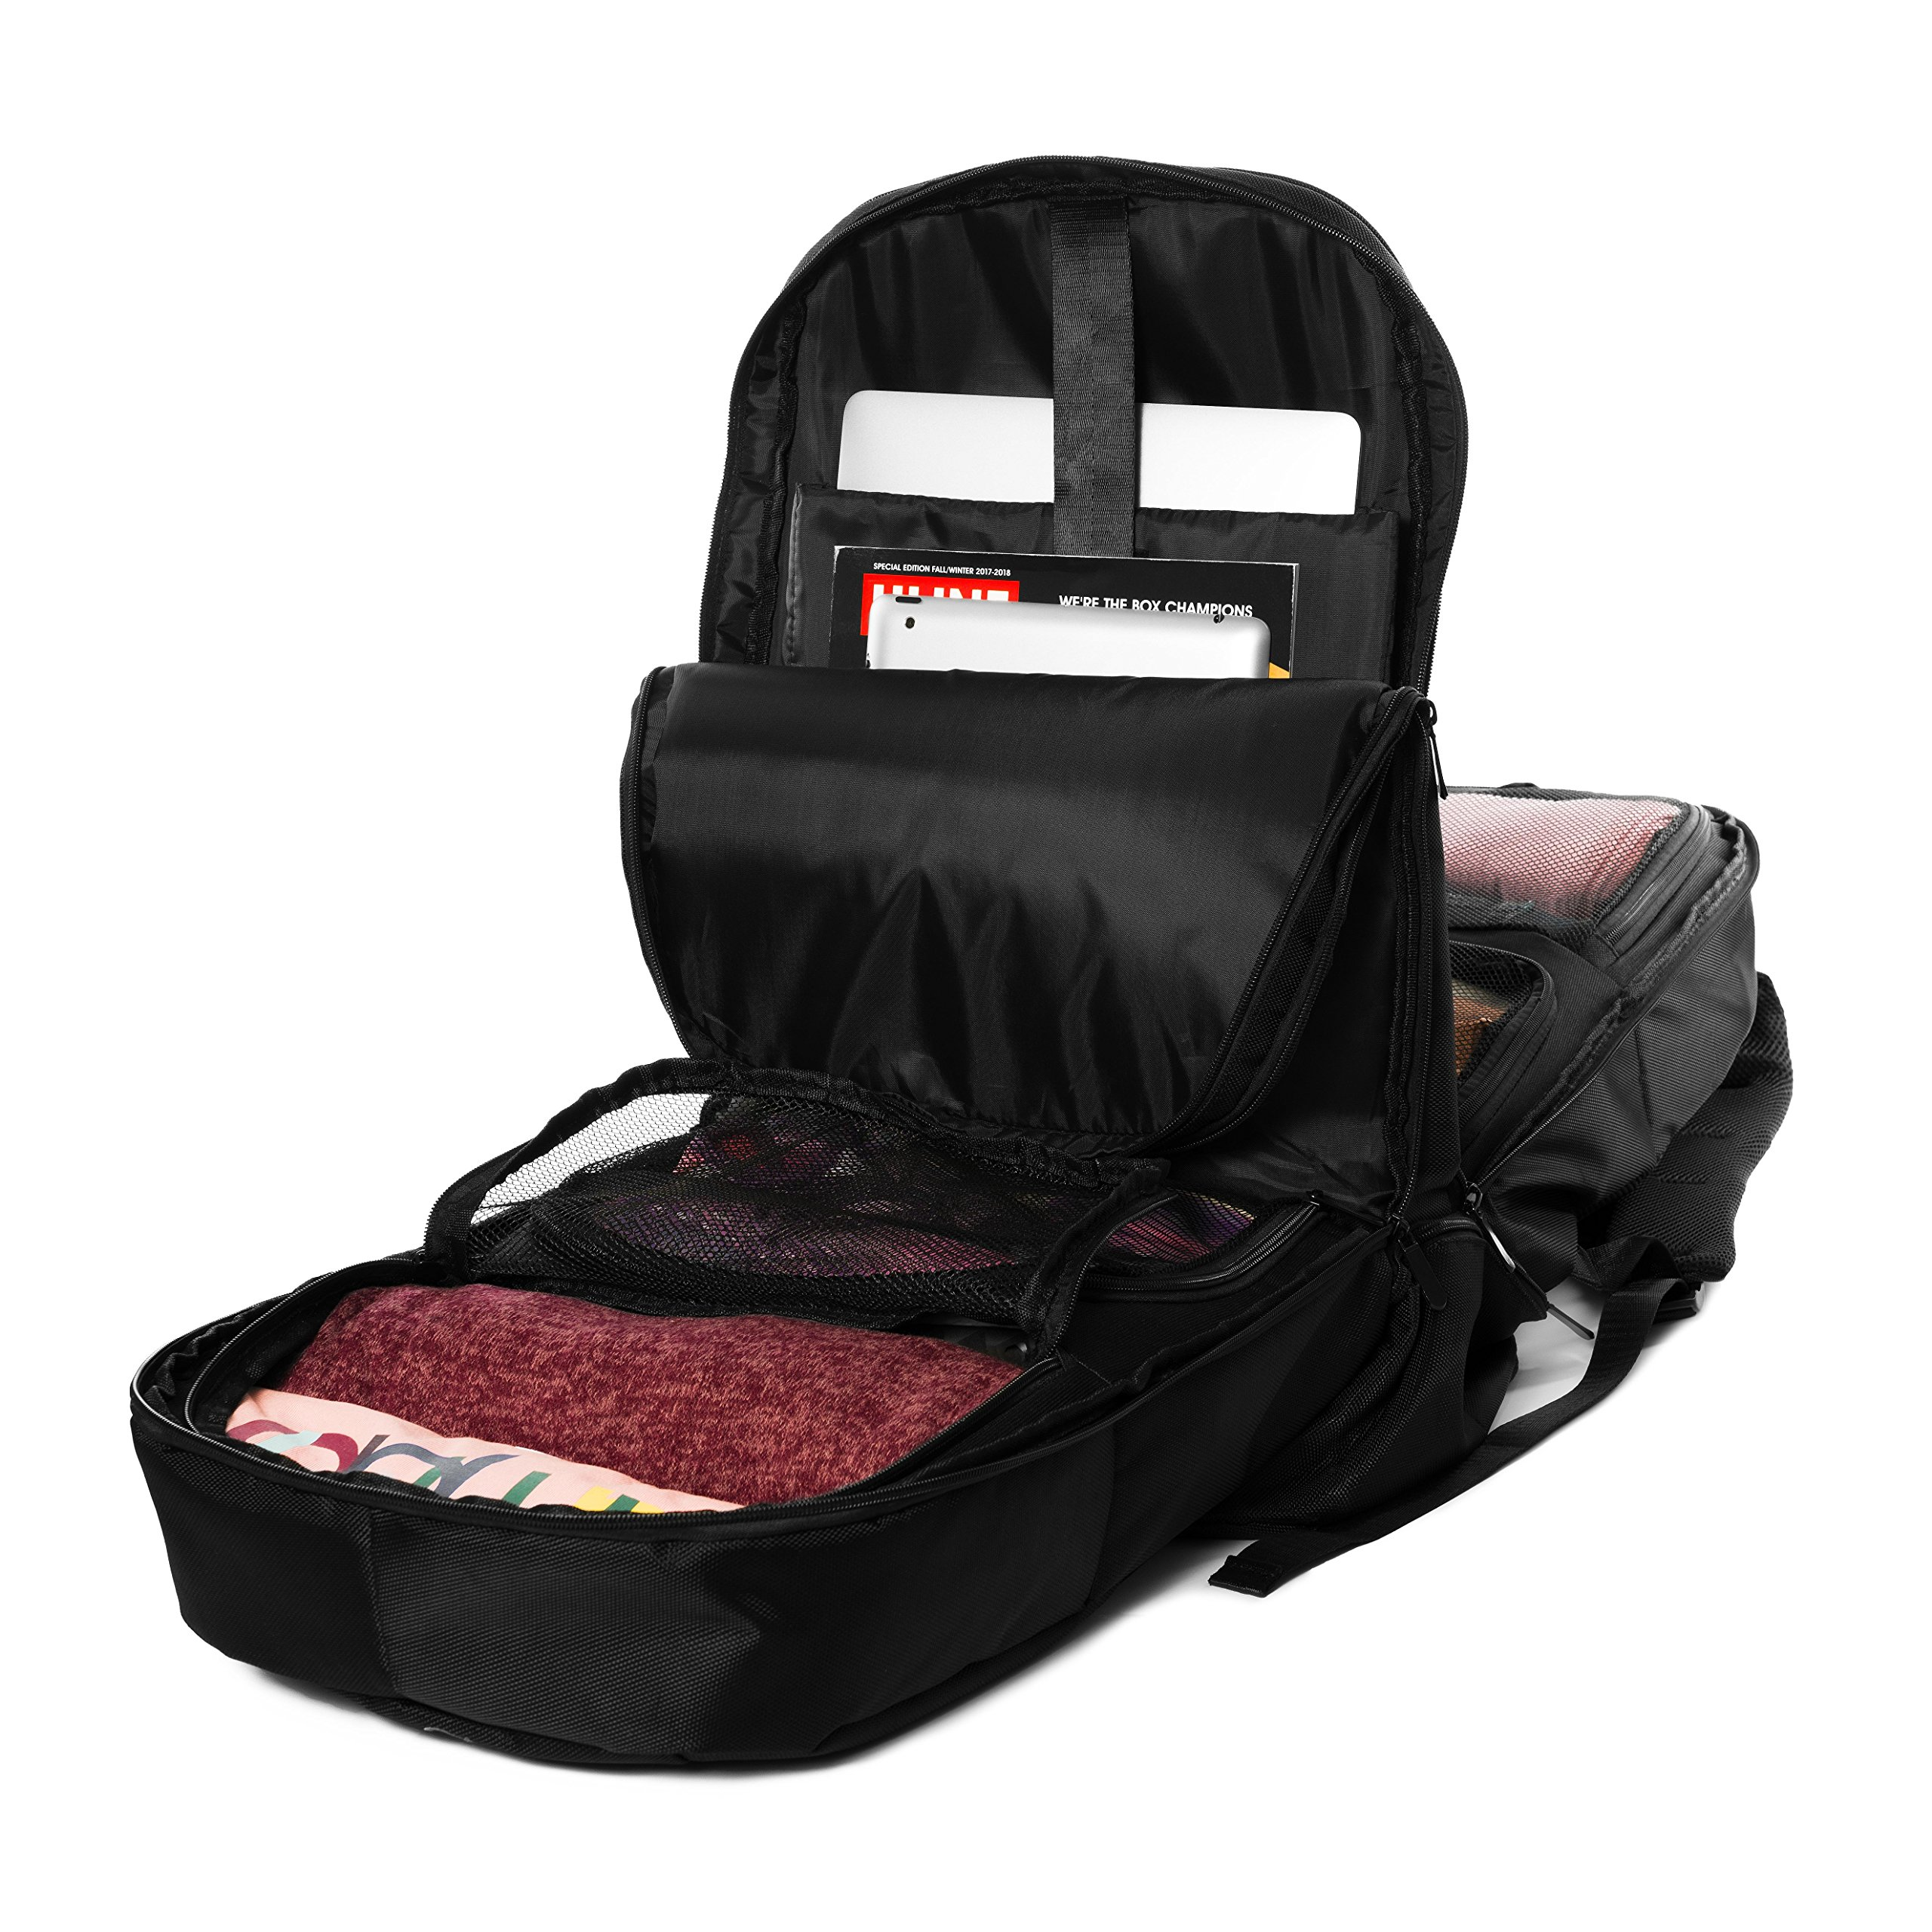 Sole Premise Shoe Bag: Carry-On Luggage To Hold Sneakers, Shoes, Heels, Boots and More. Weekender for Gym, Travel, Sports